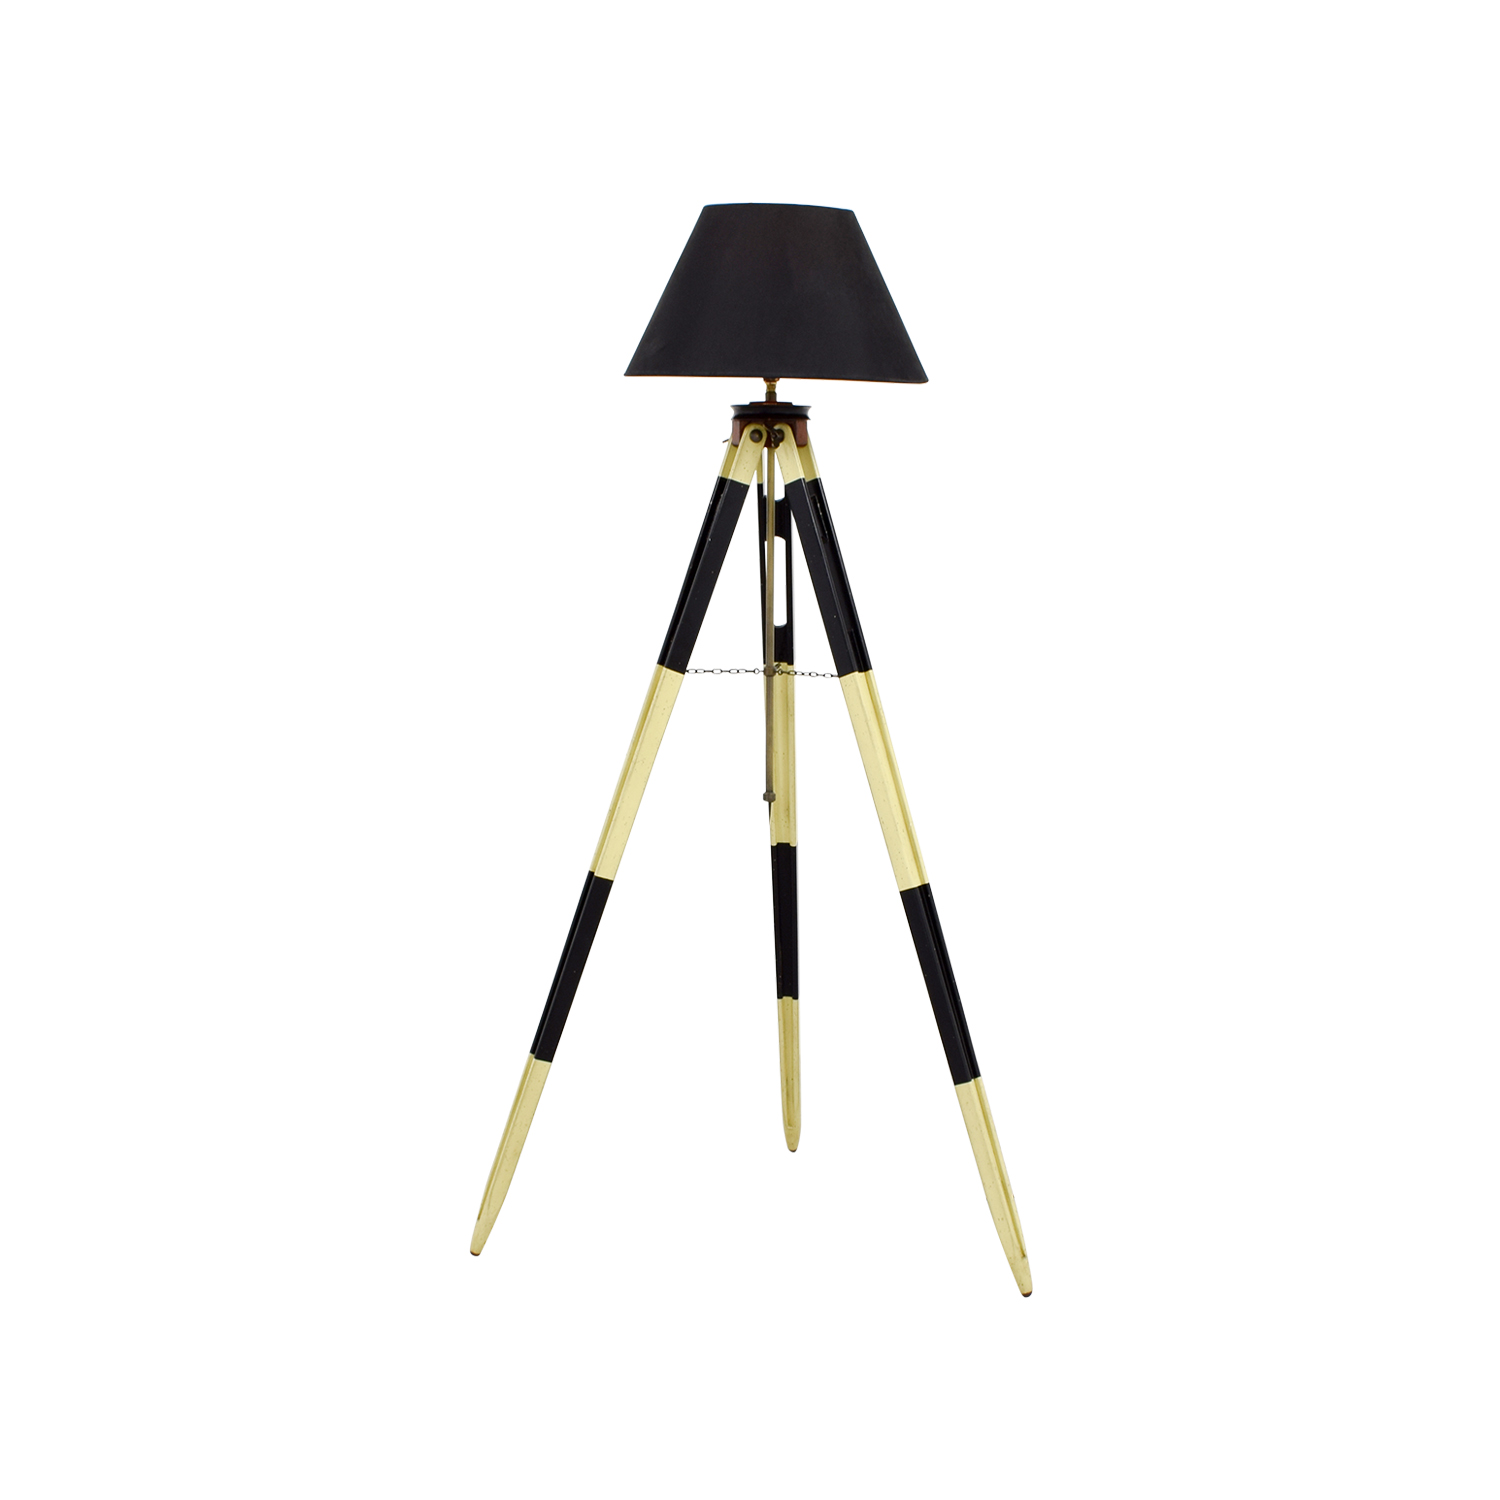 Authentic Models Authentic Models Surveyors Black and White Tripod Lamp second hand